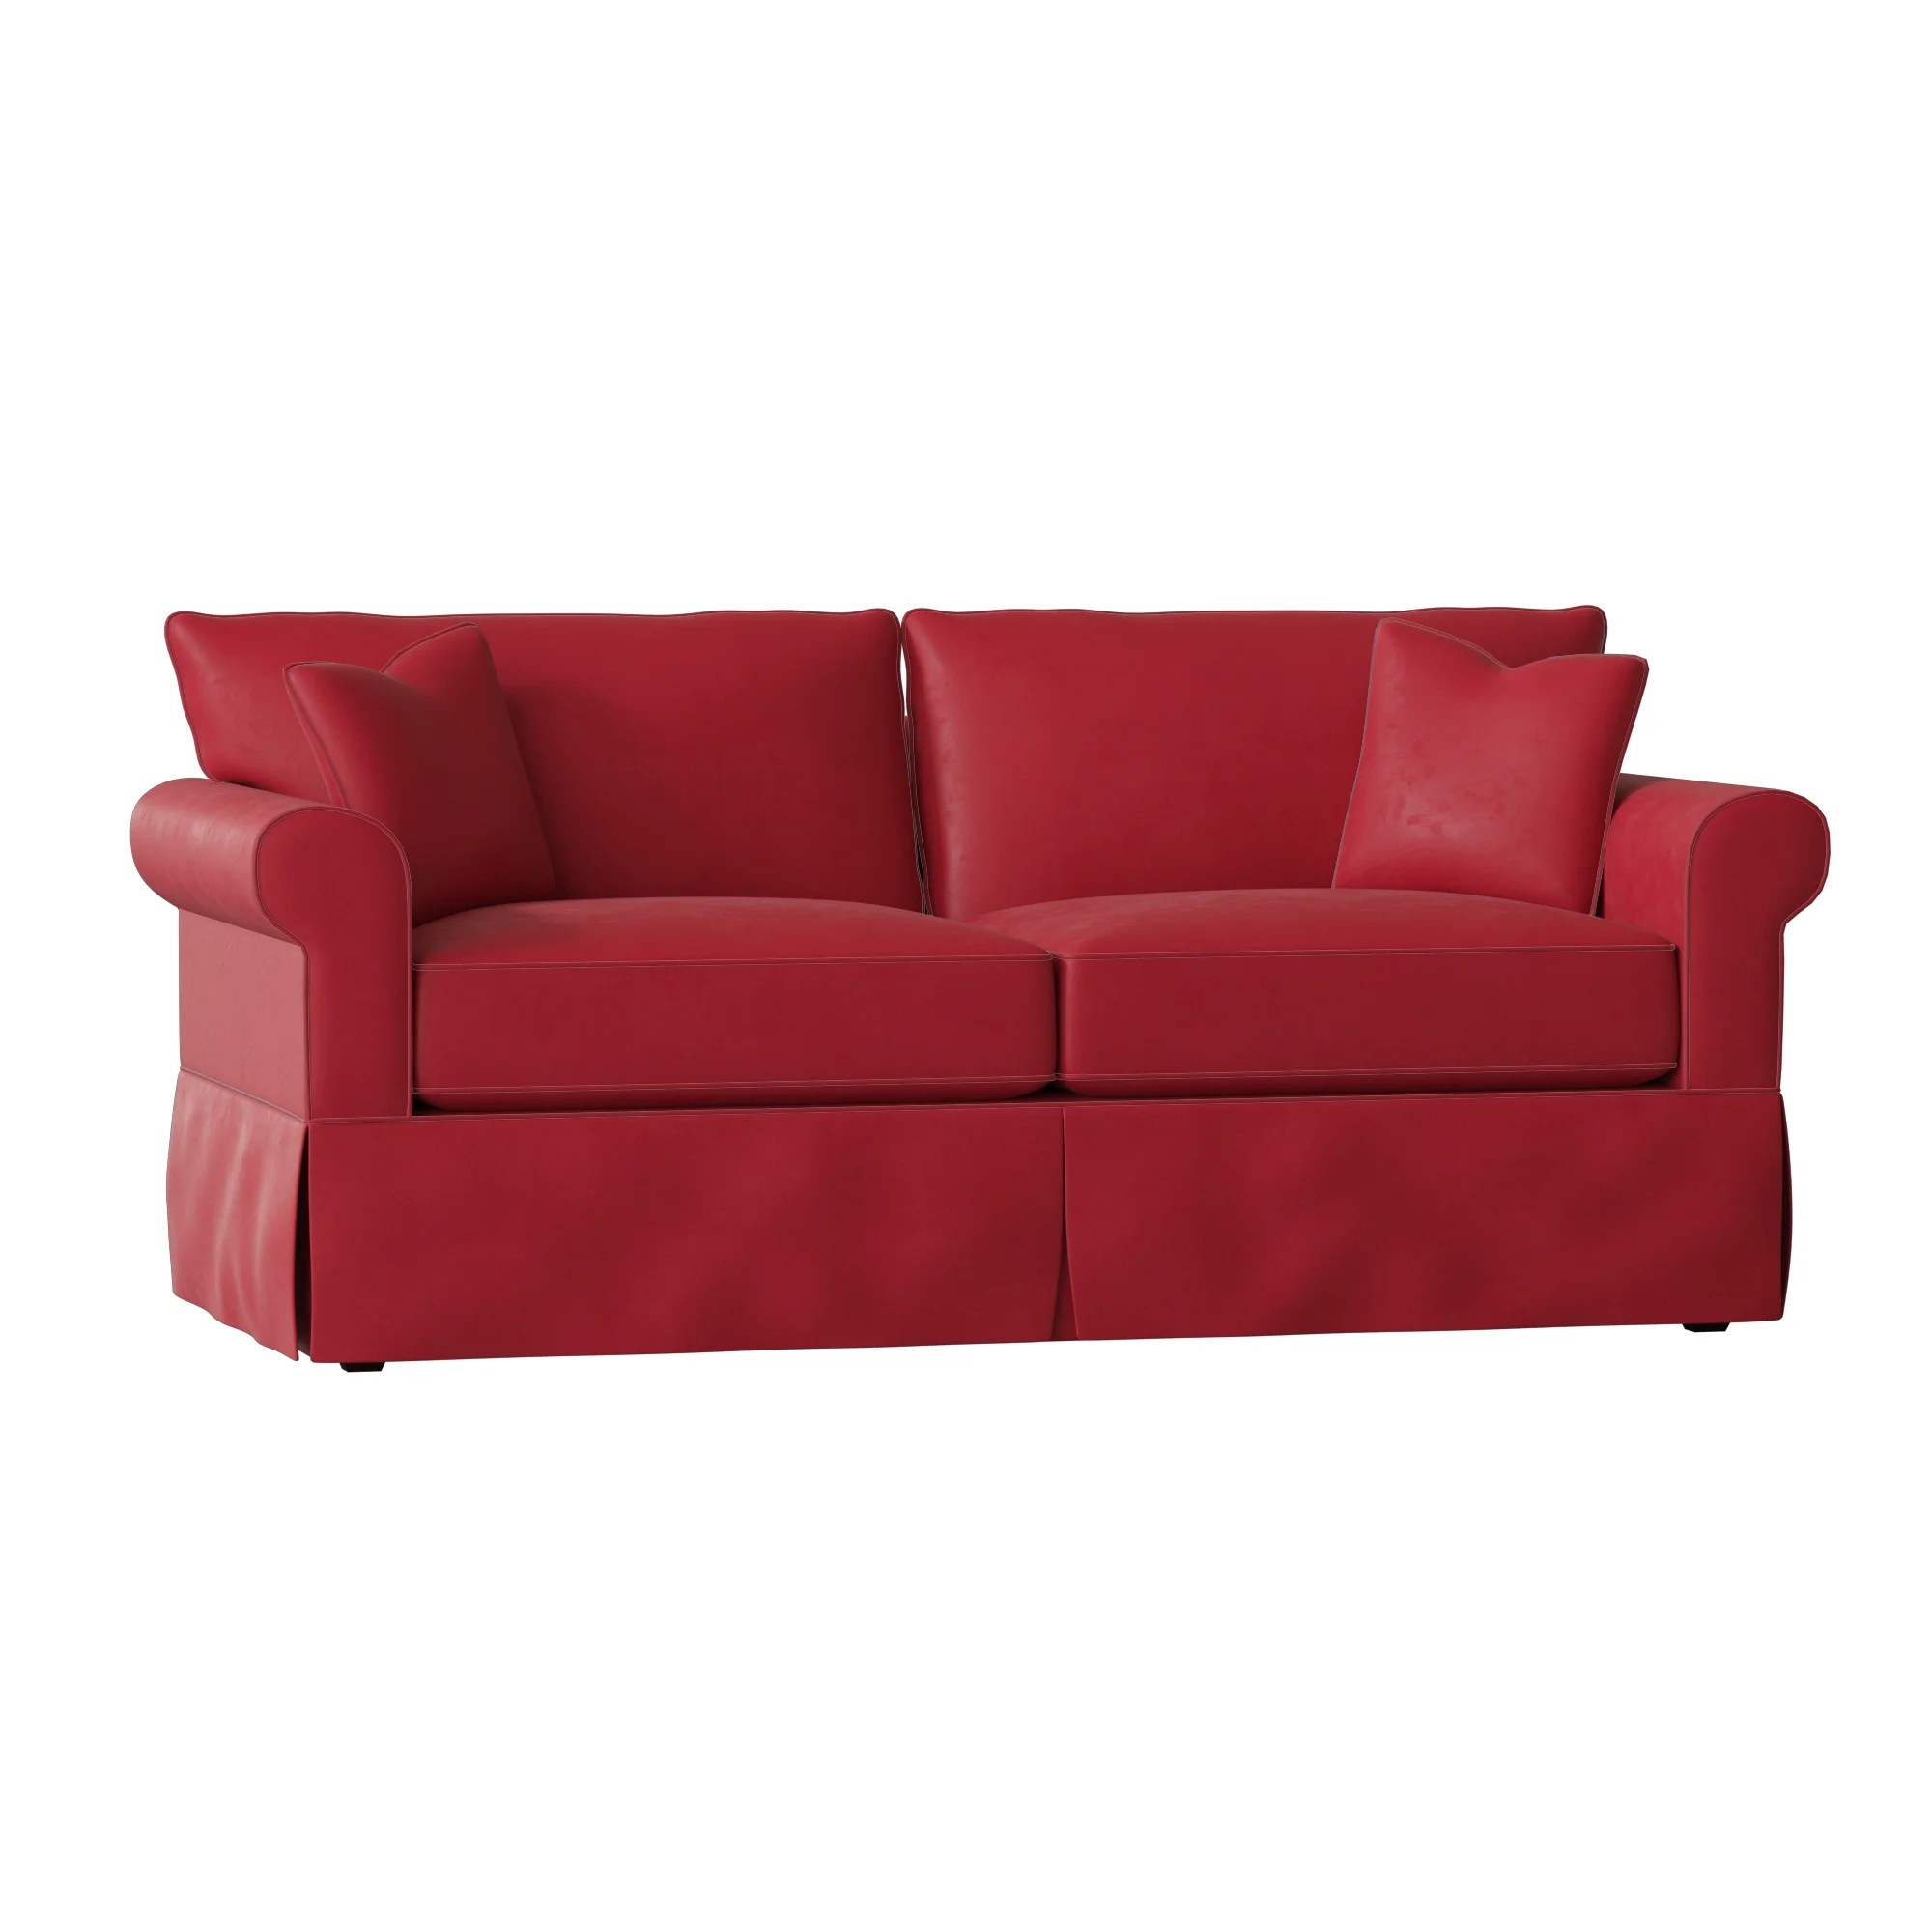 Sofa Entertainment Group Llc Jameson Sofa